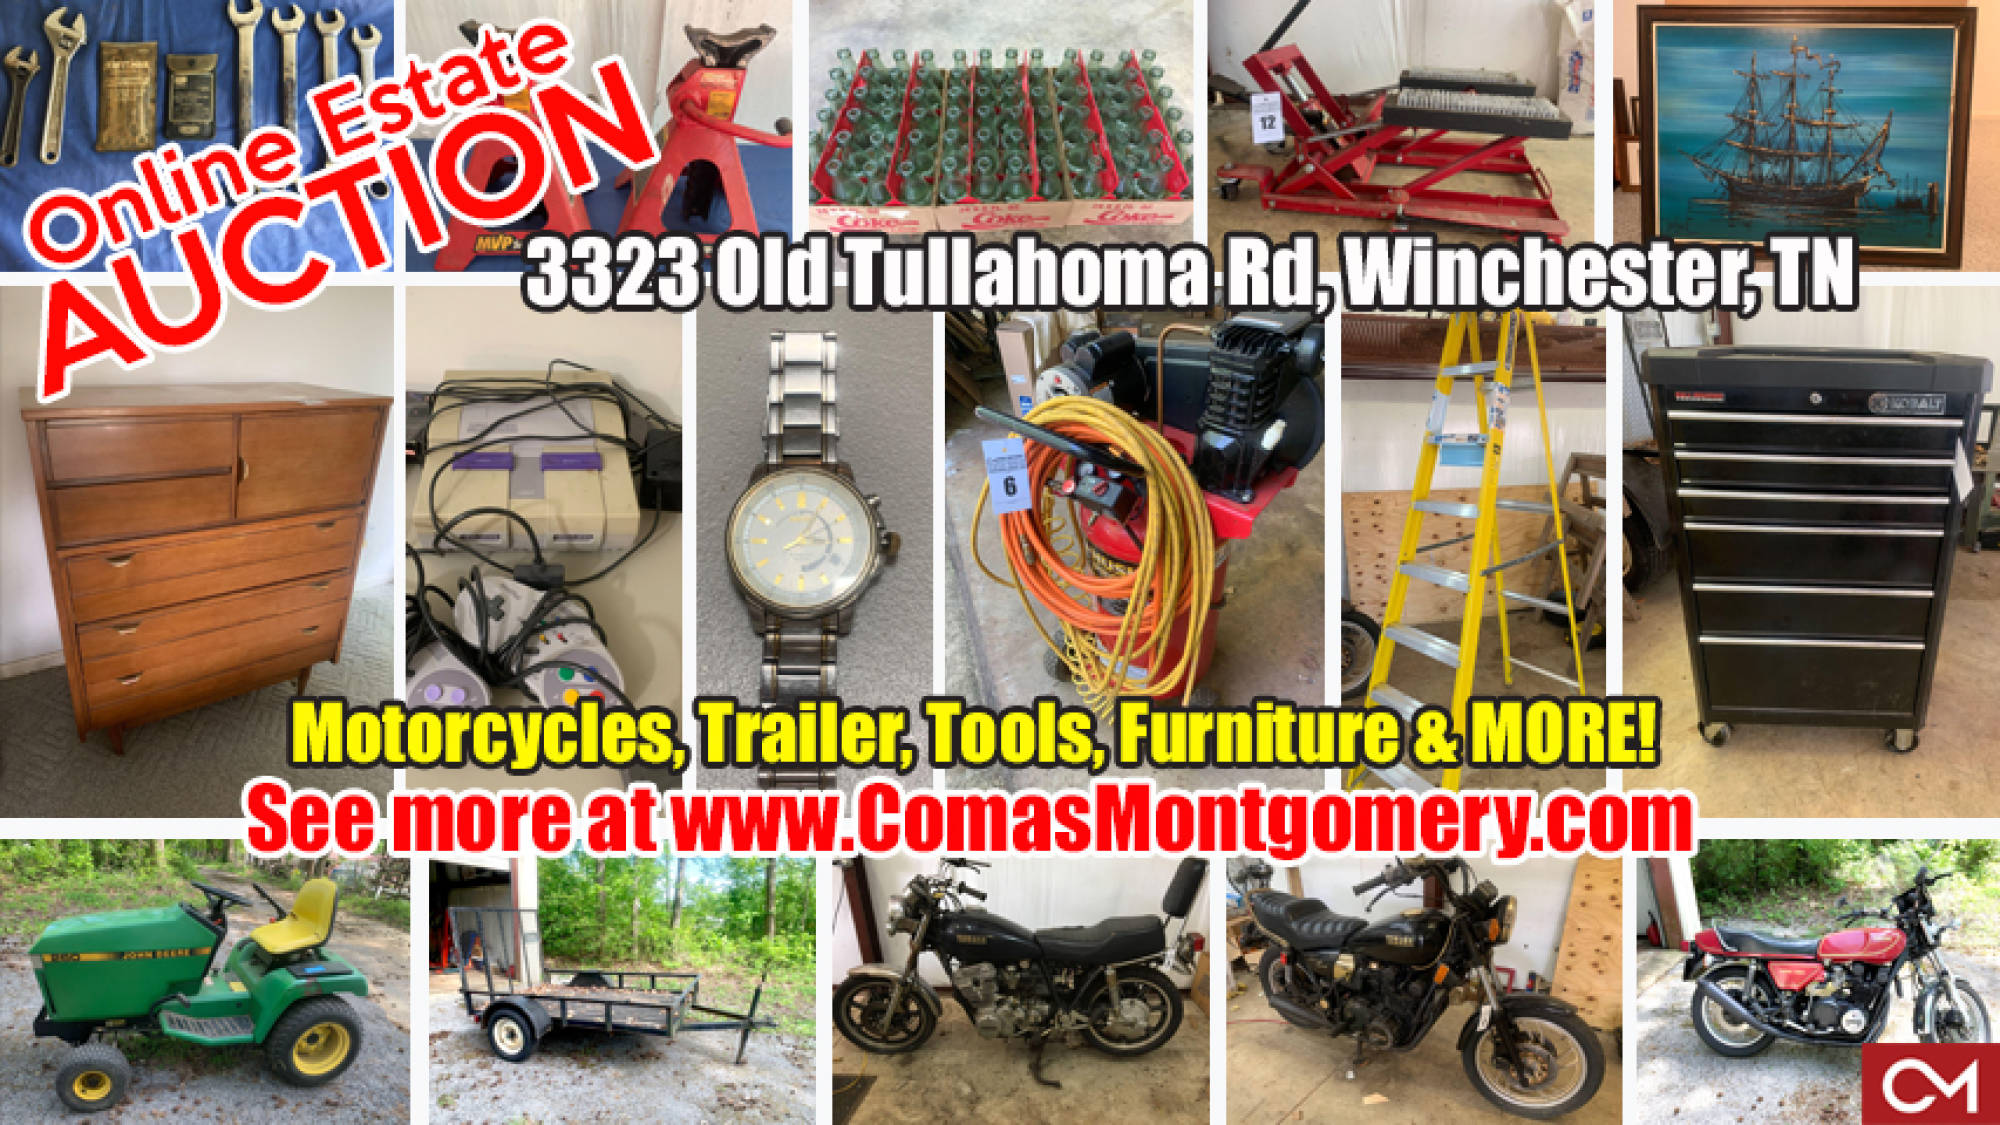 Harley, Davidson, Motorcycle, Motorcycles, Motorbikes, For Sale, Trailer, John Deere, Furniture, Tools, DeWalt, Coca-Cola, Collectibles, Appliances, Nintendo, Electronics, Watches, Jacks, Auto, Repair, Estate, Auction, Sale, Bid, Online, Winchester, Franklin County, Tennessee, Comas, Montgomery